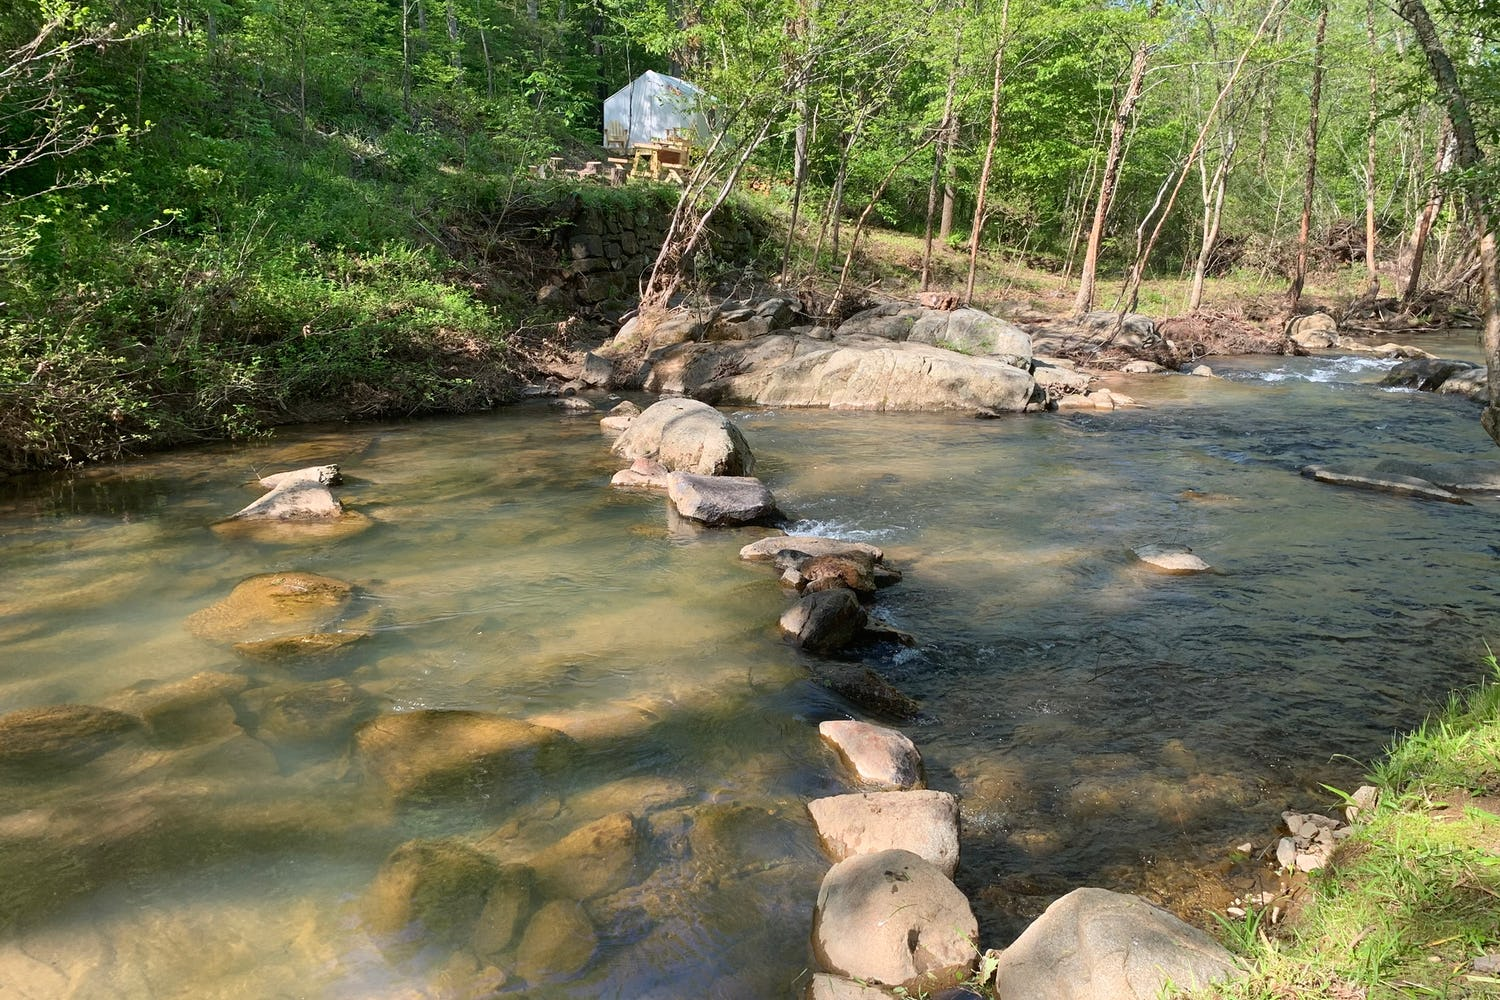 Glamping site beside flowing river with rock path across in Virginia.